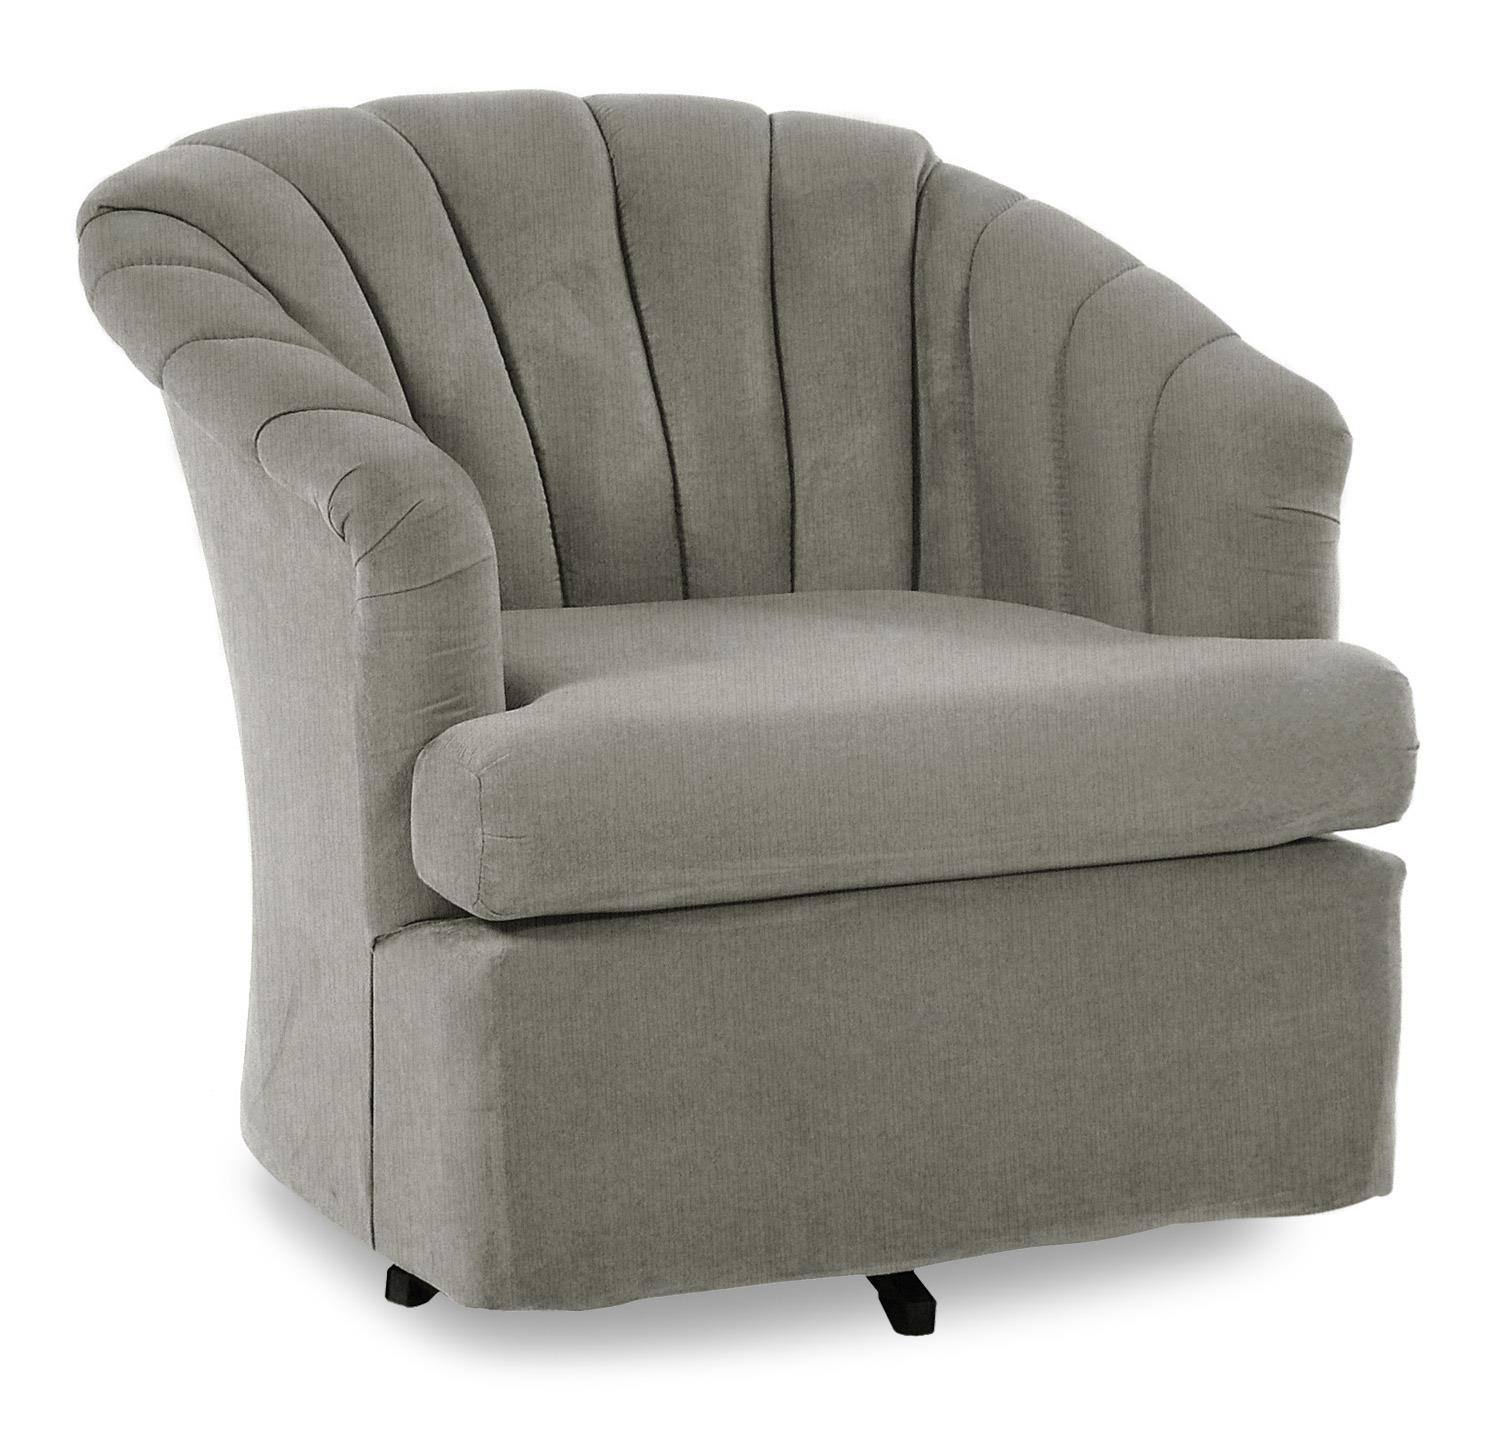 Barrel Chair Swivel Chairs Swivel Barrel Elaine Swivel Barrel Chair